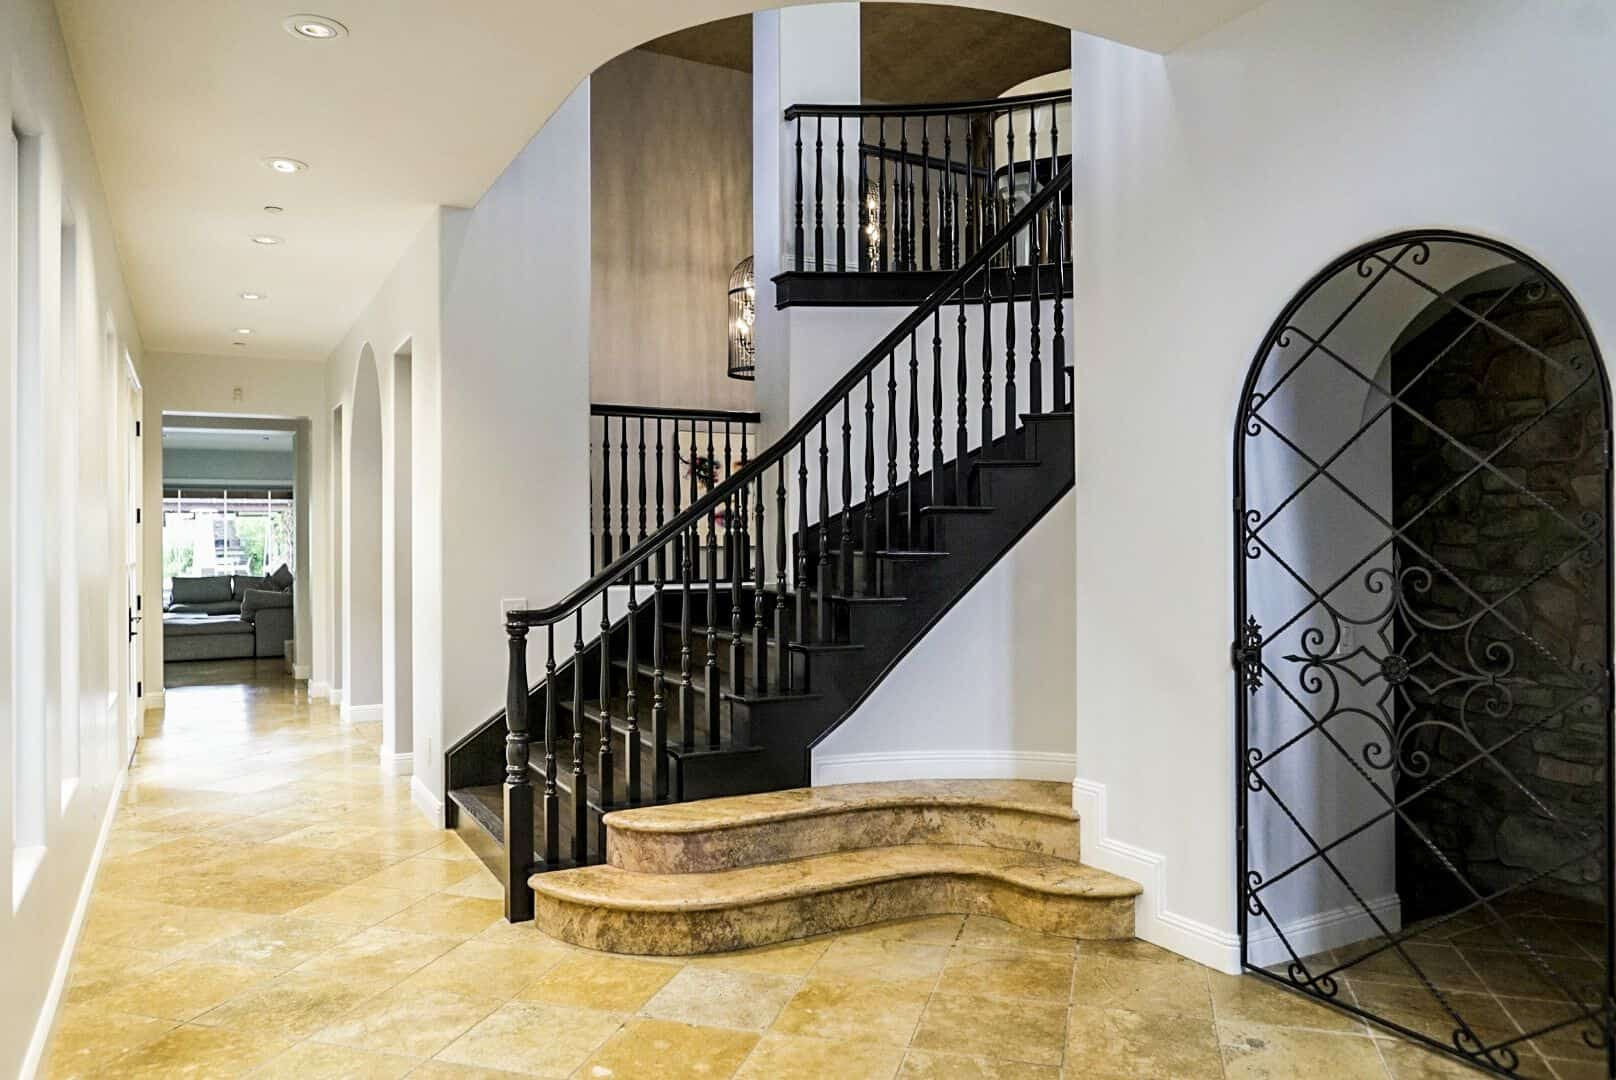 An entry featuring beige tiles flooring. It showcases a staircase on the side leading to the basement, and another staircase leading to the second floor. Images courtesy of Toptenrealestatedeals.com.